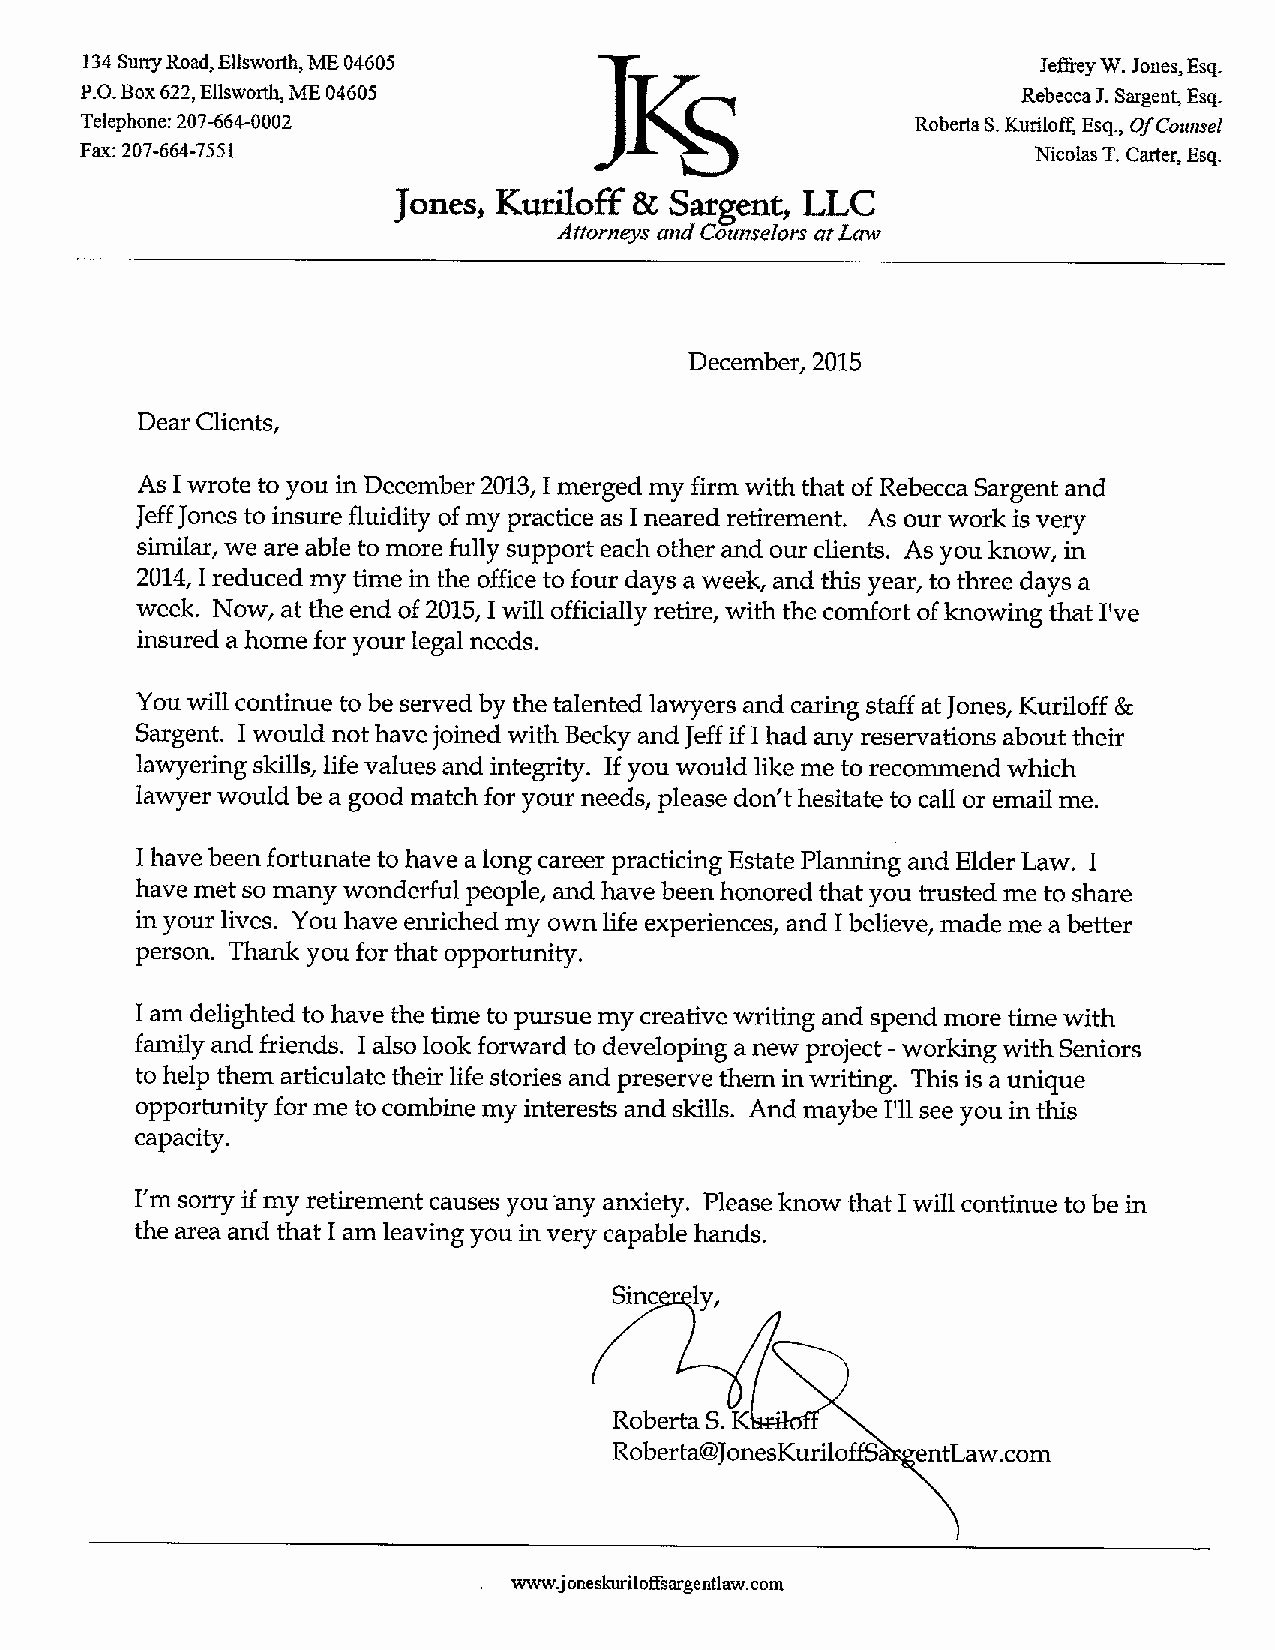 Retirement Letter to Clients New Roberta Retirement Letter 2015